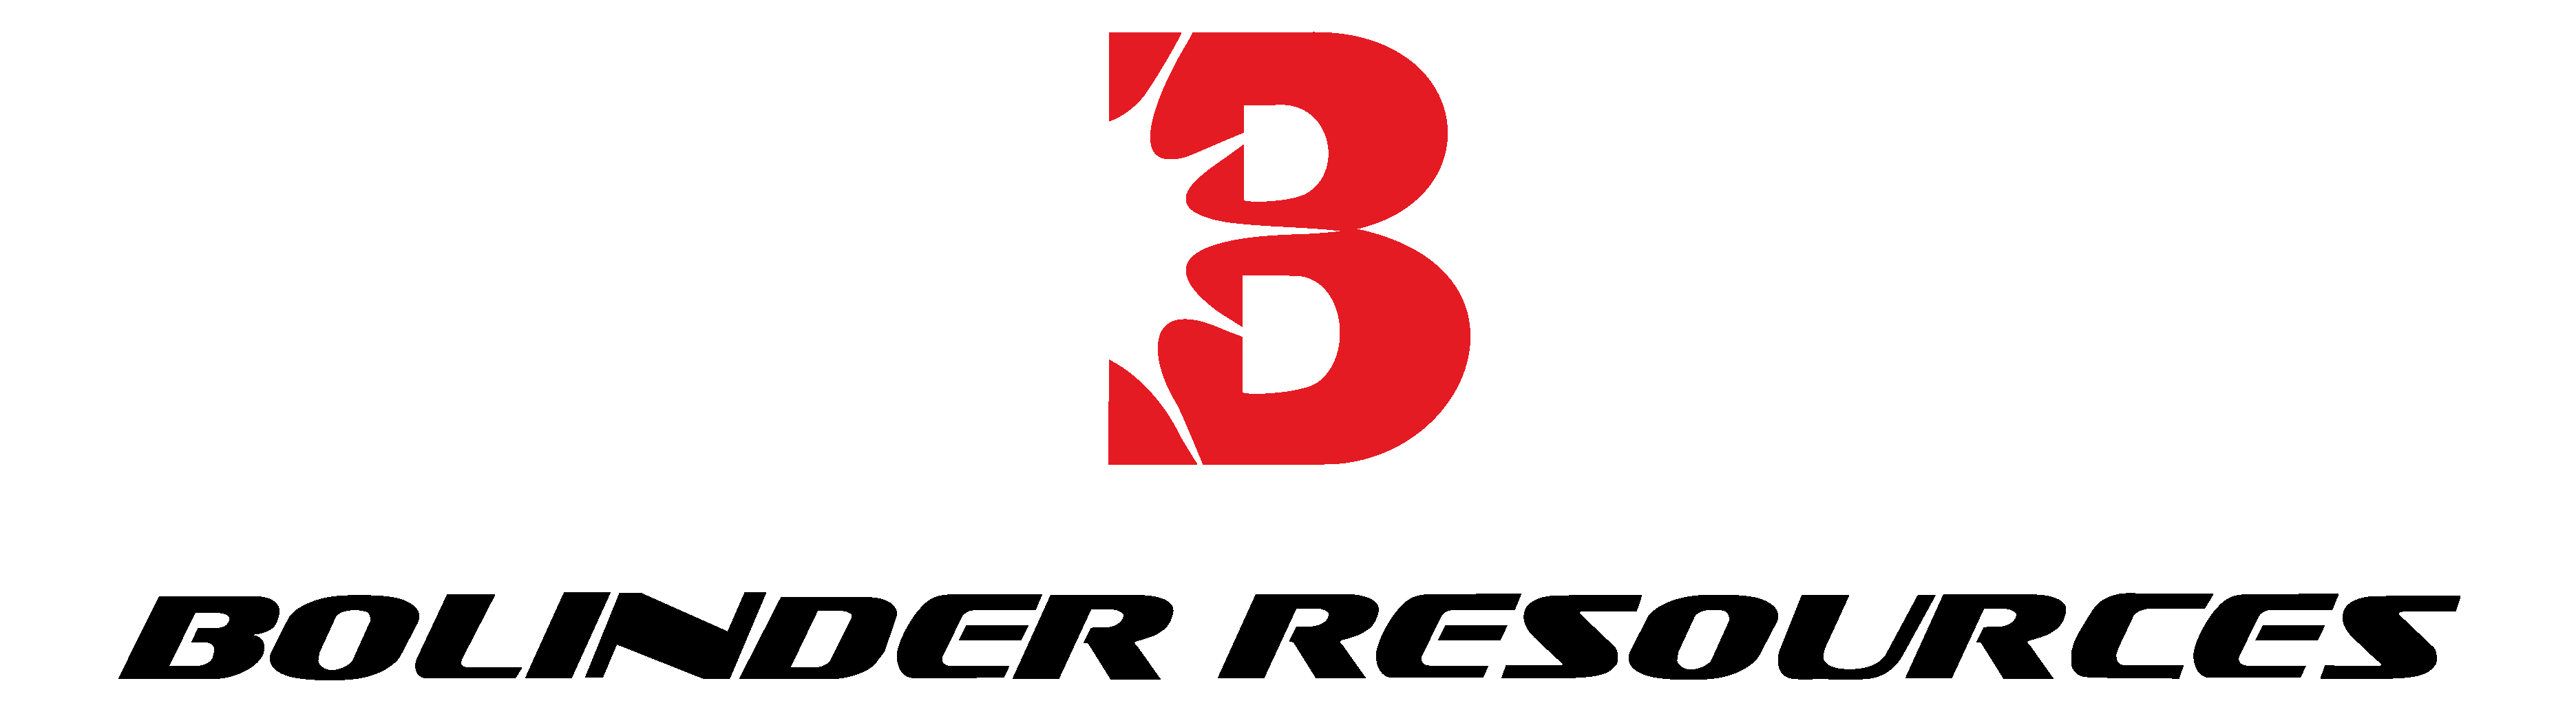 Bolinder_Resources_Logo.png